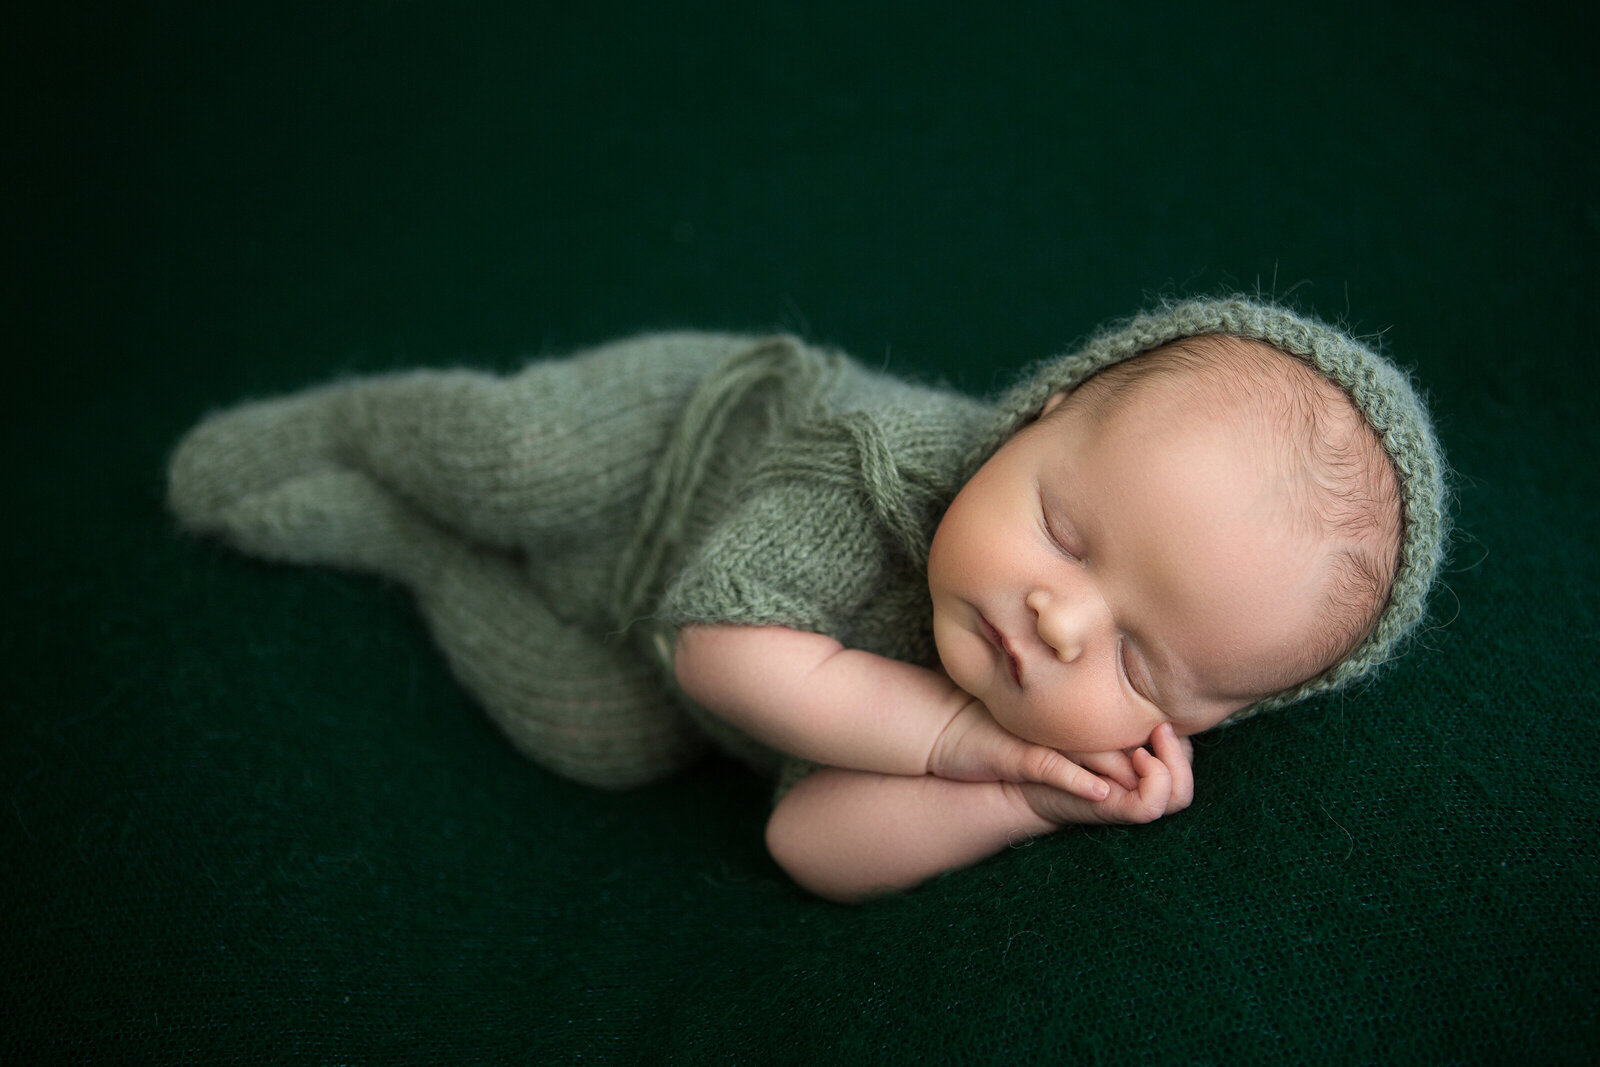 Posed in-studio portrait of newborn baby sleeping, green outfit and background